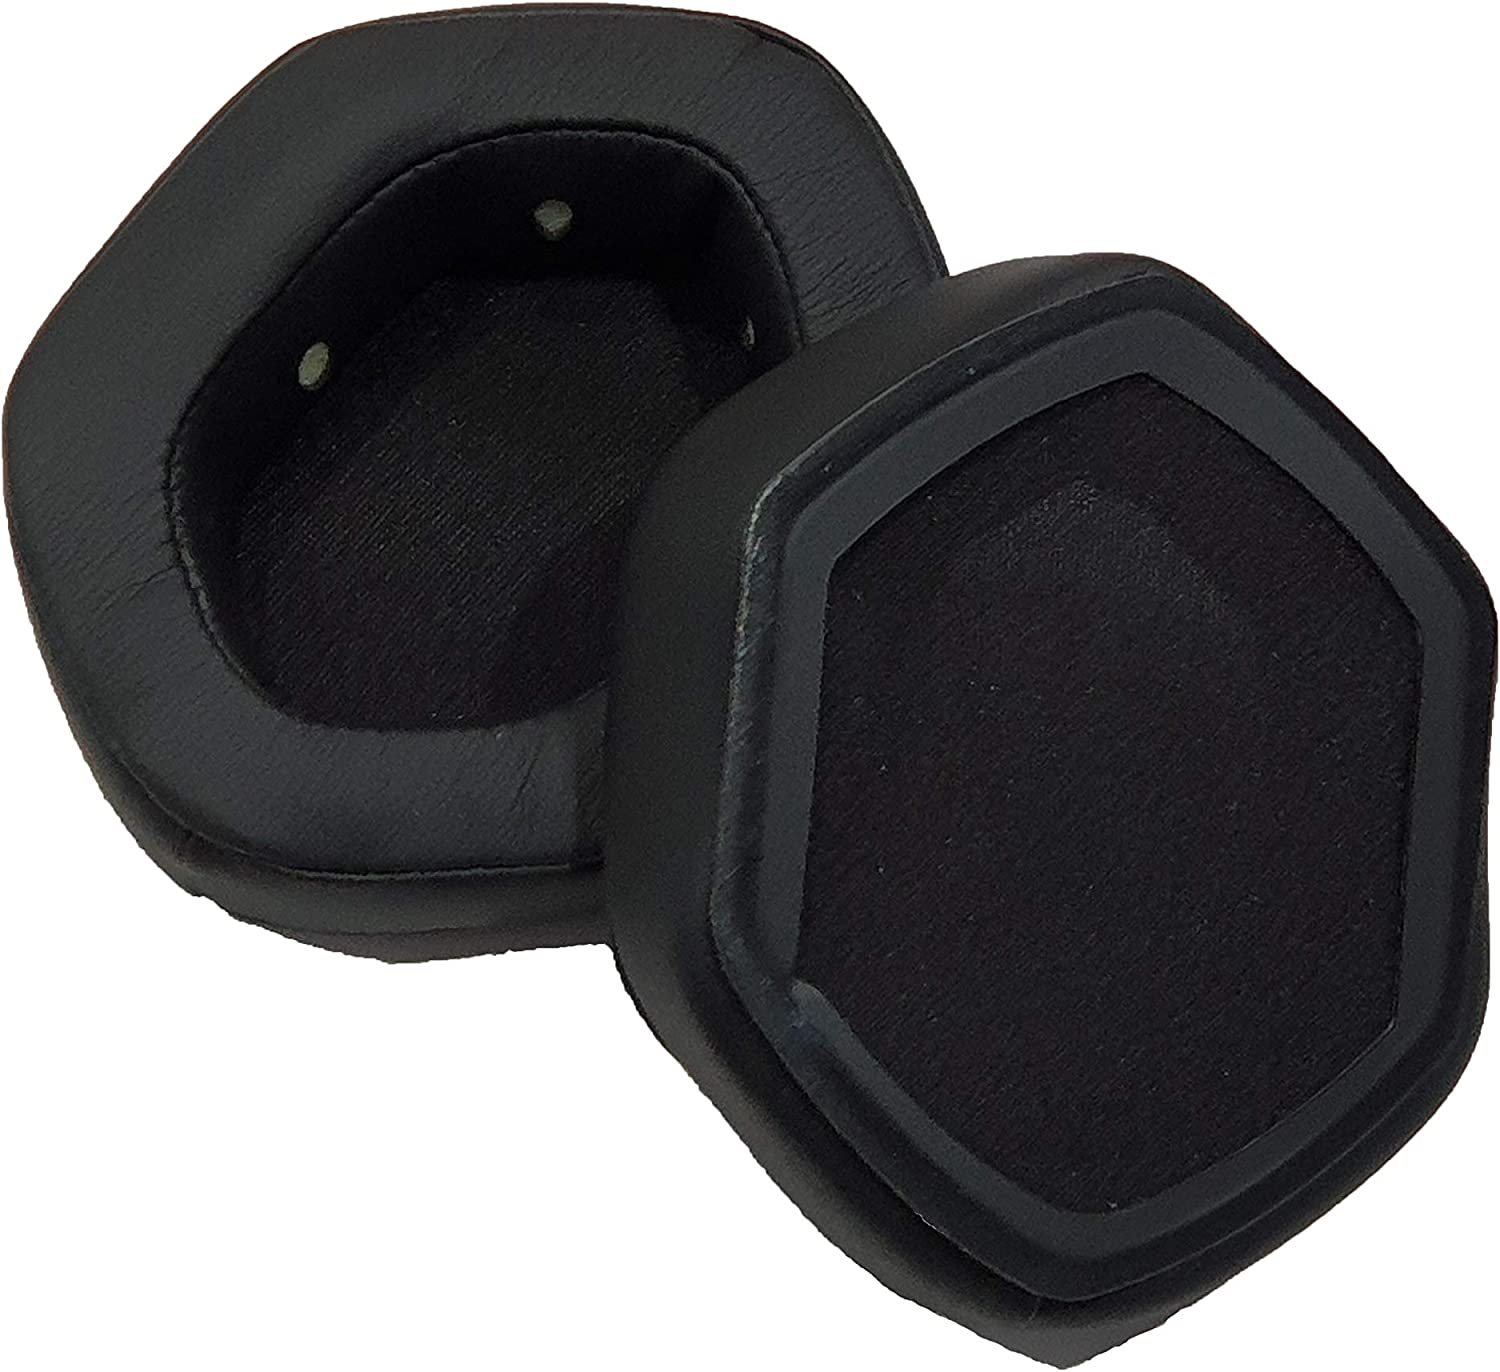 Crossfade LP2 AHG Replacement XL Ear Cushions for V-Moda Crossfade LP Black Crossfade M-100 and Crossfade Wireless 1 and 2 Headphones